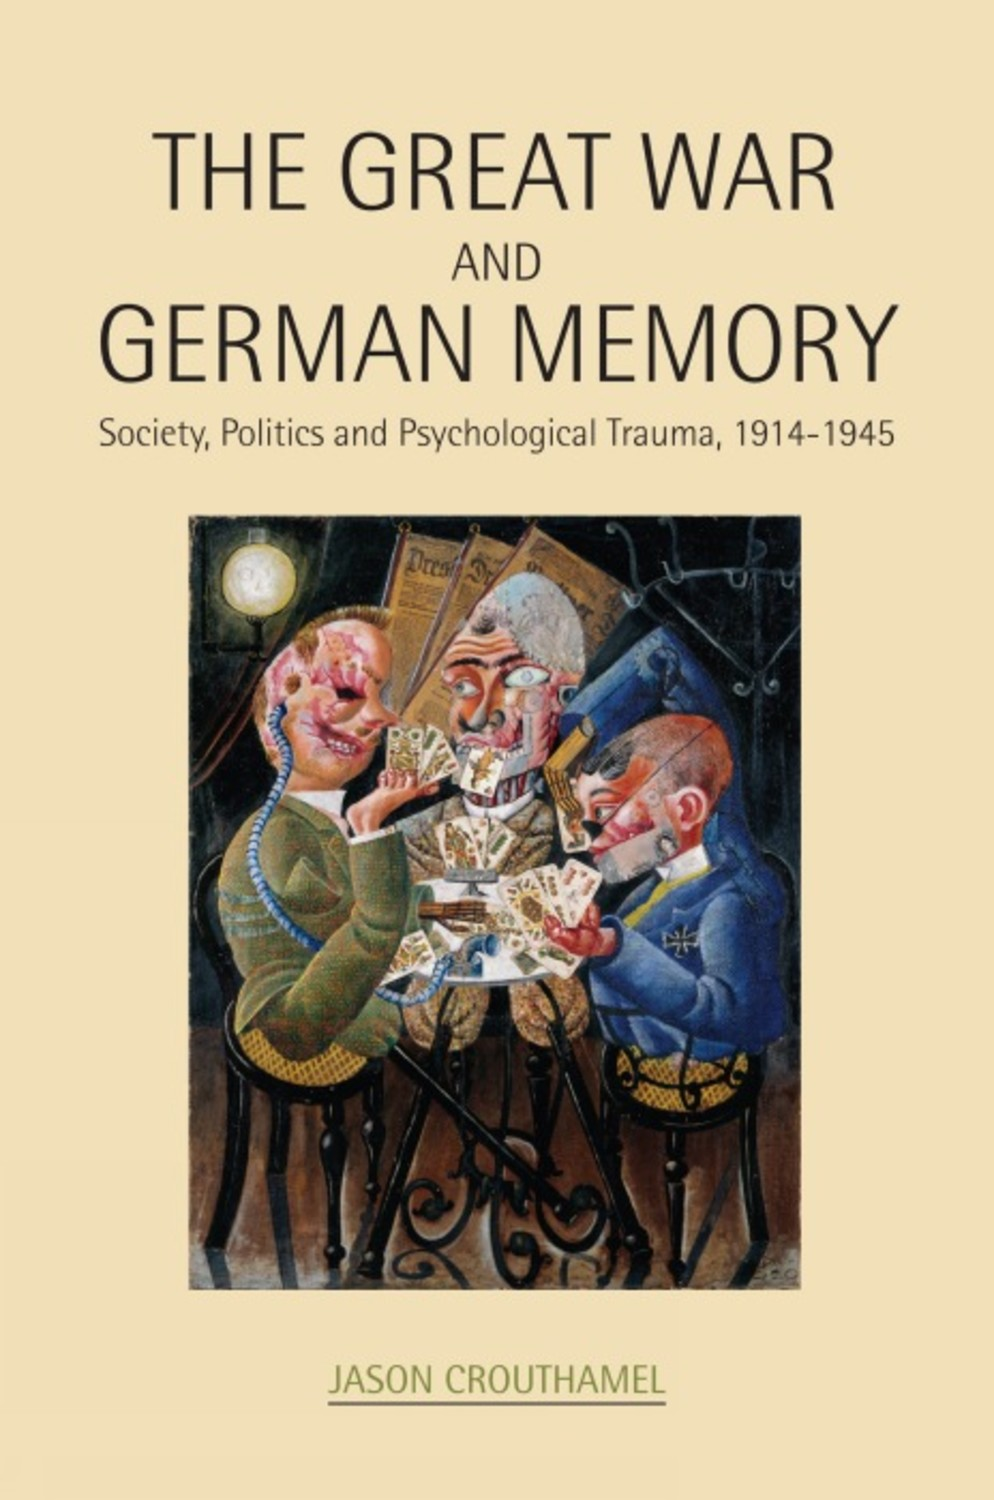 The Great War and German Memory